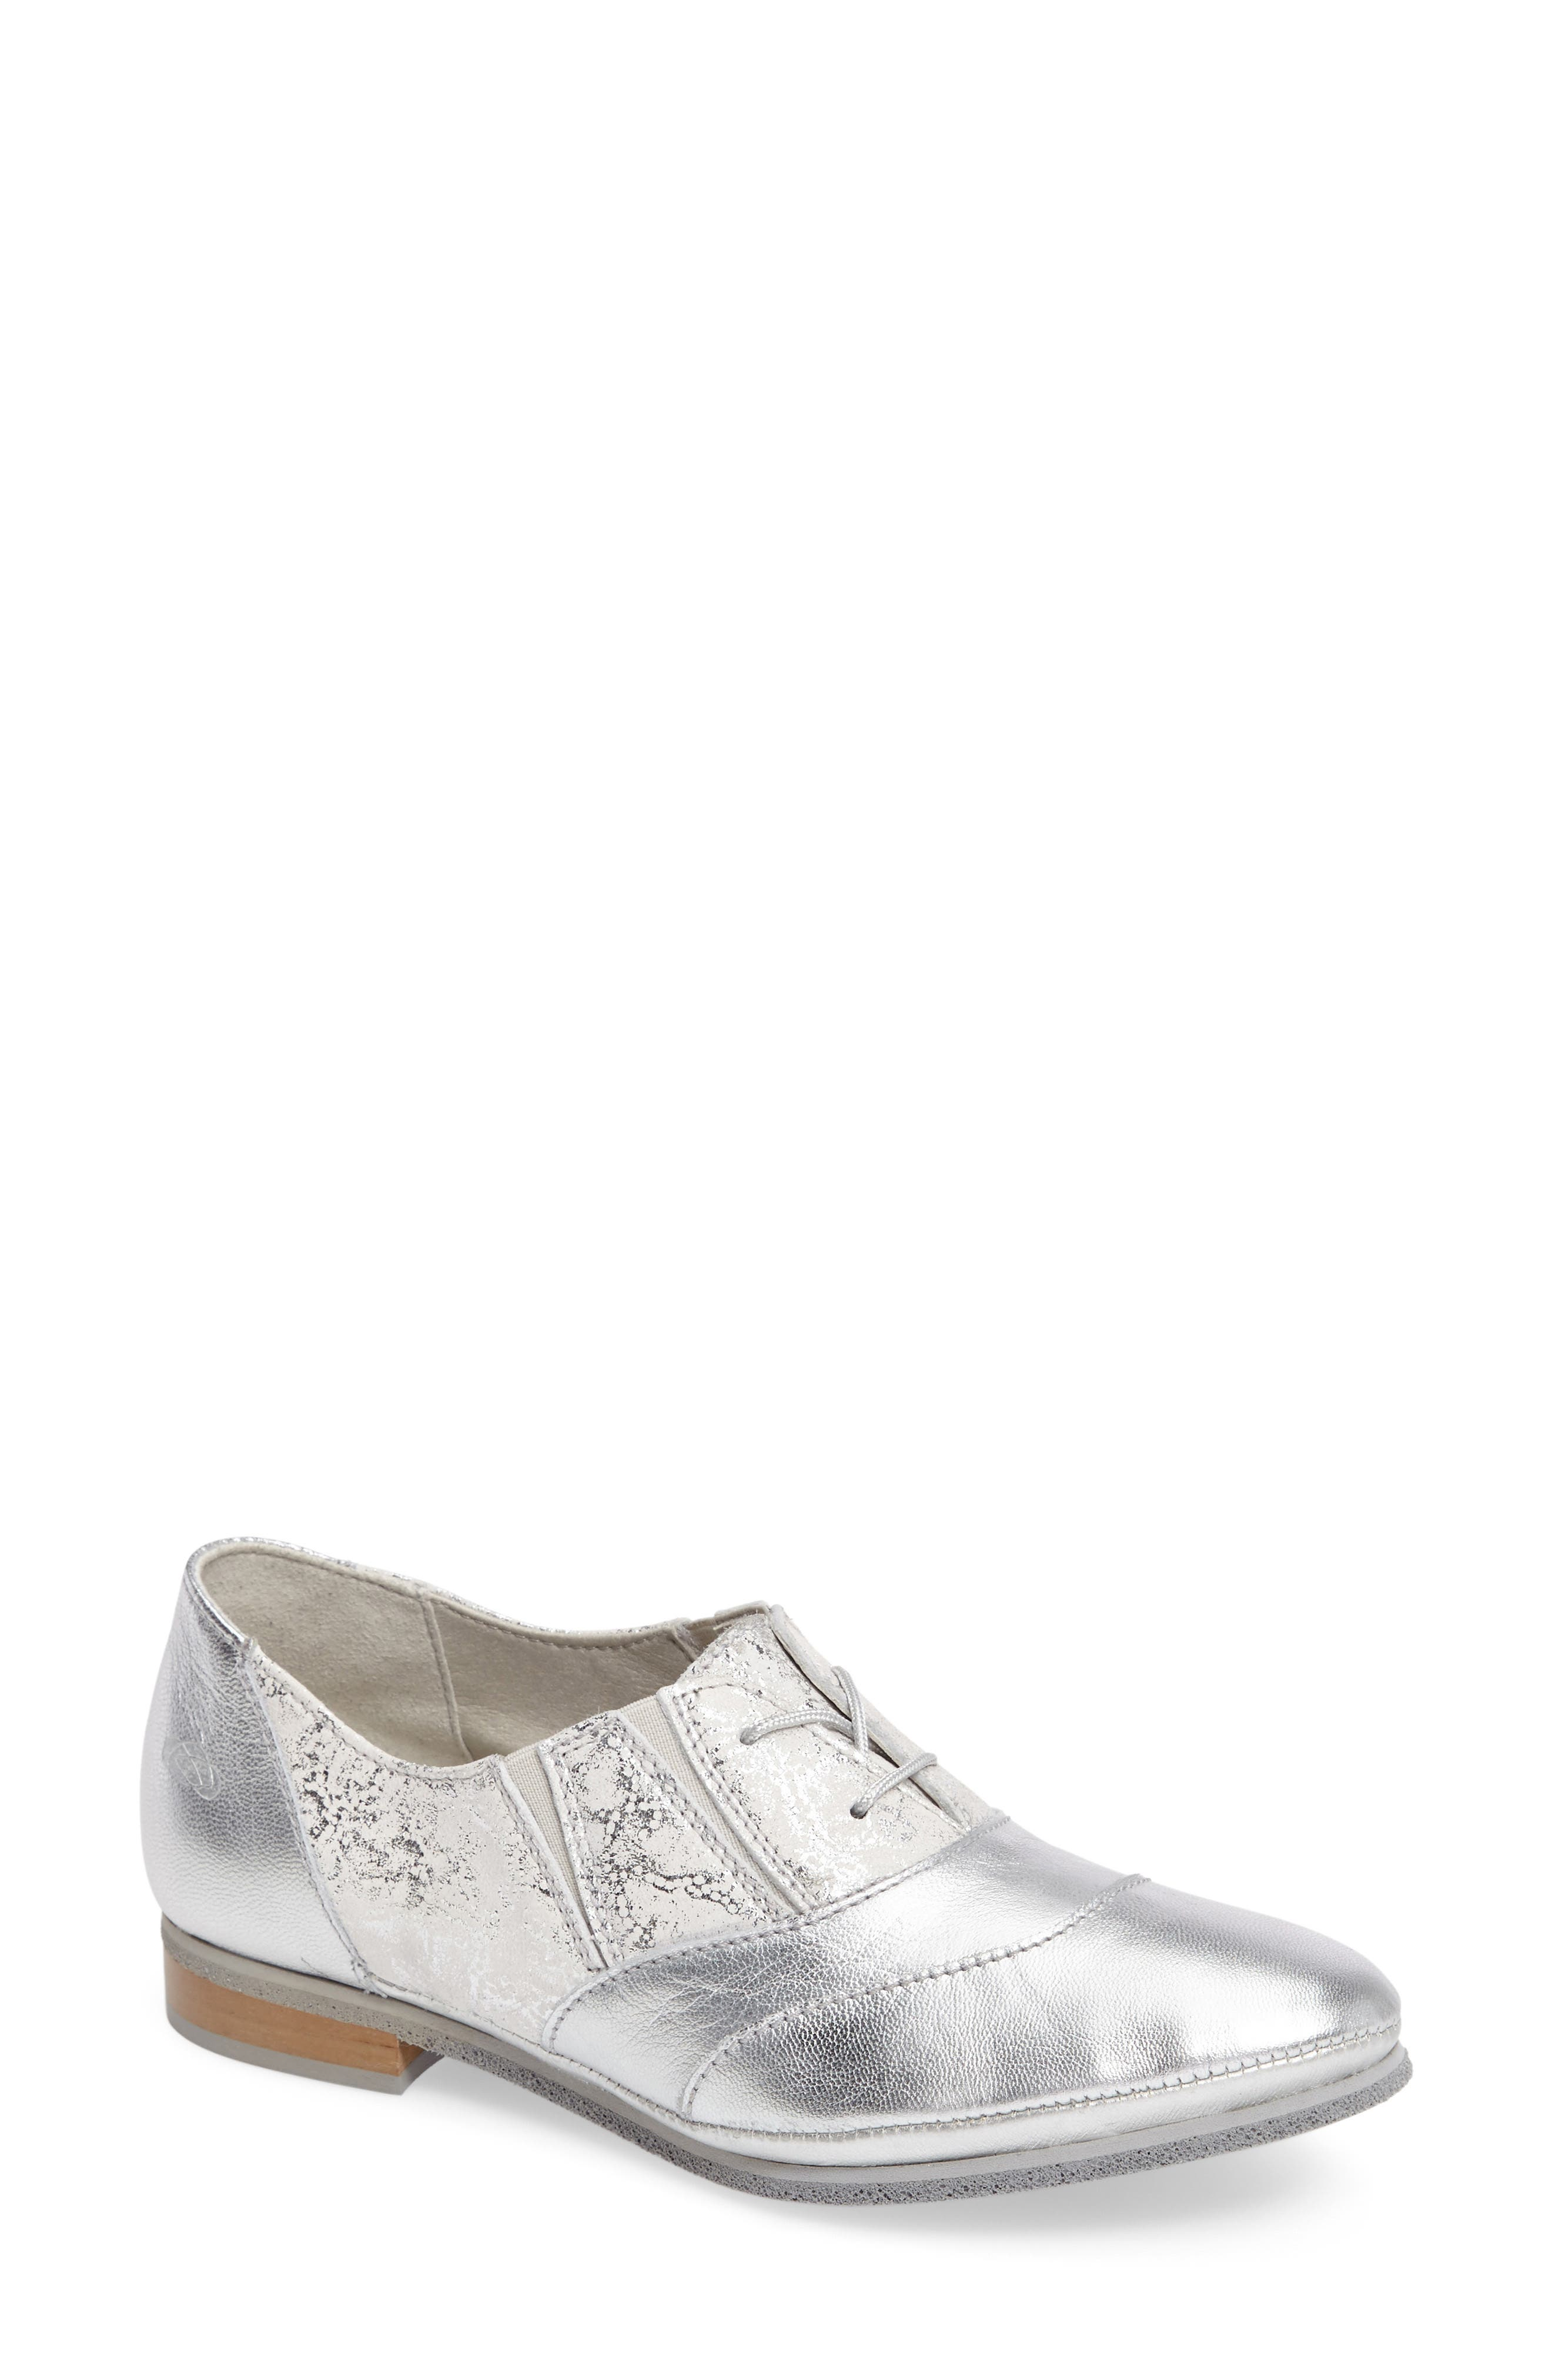 Alternate Image 1 Selected - CLOUD Bliss Lace-Up Oxford (Women)